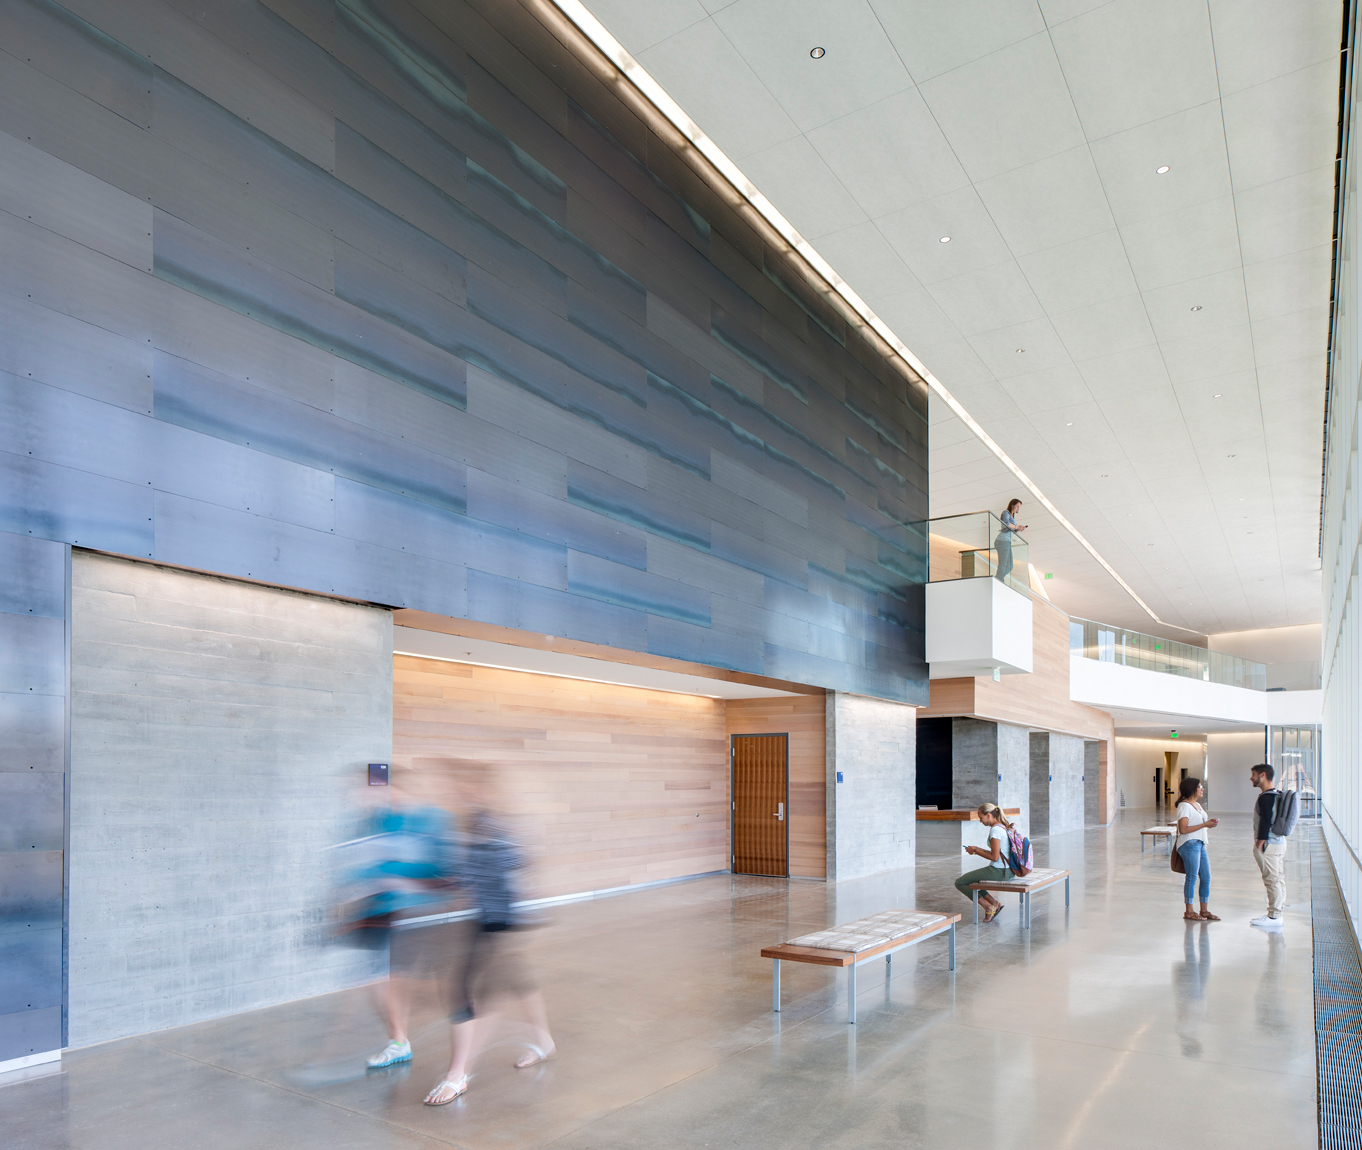 Photo os college students occupying main common space of a new academic building with copper cladding, concrete floors, wood panneling and natural day light.